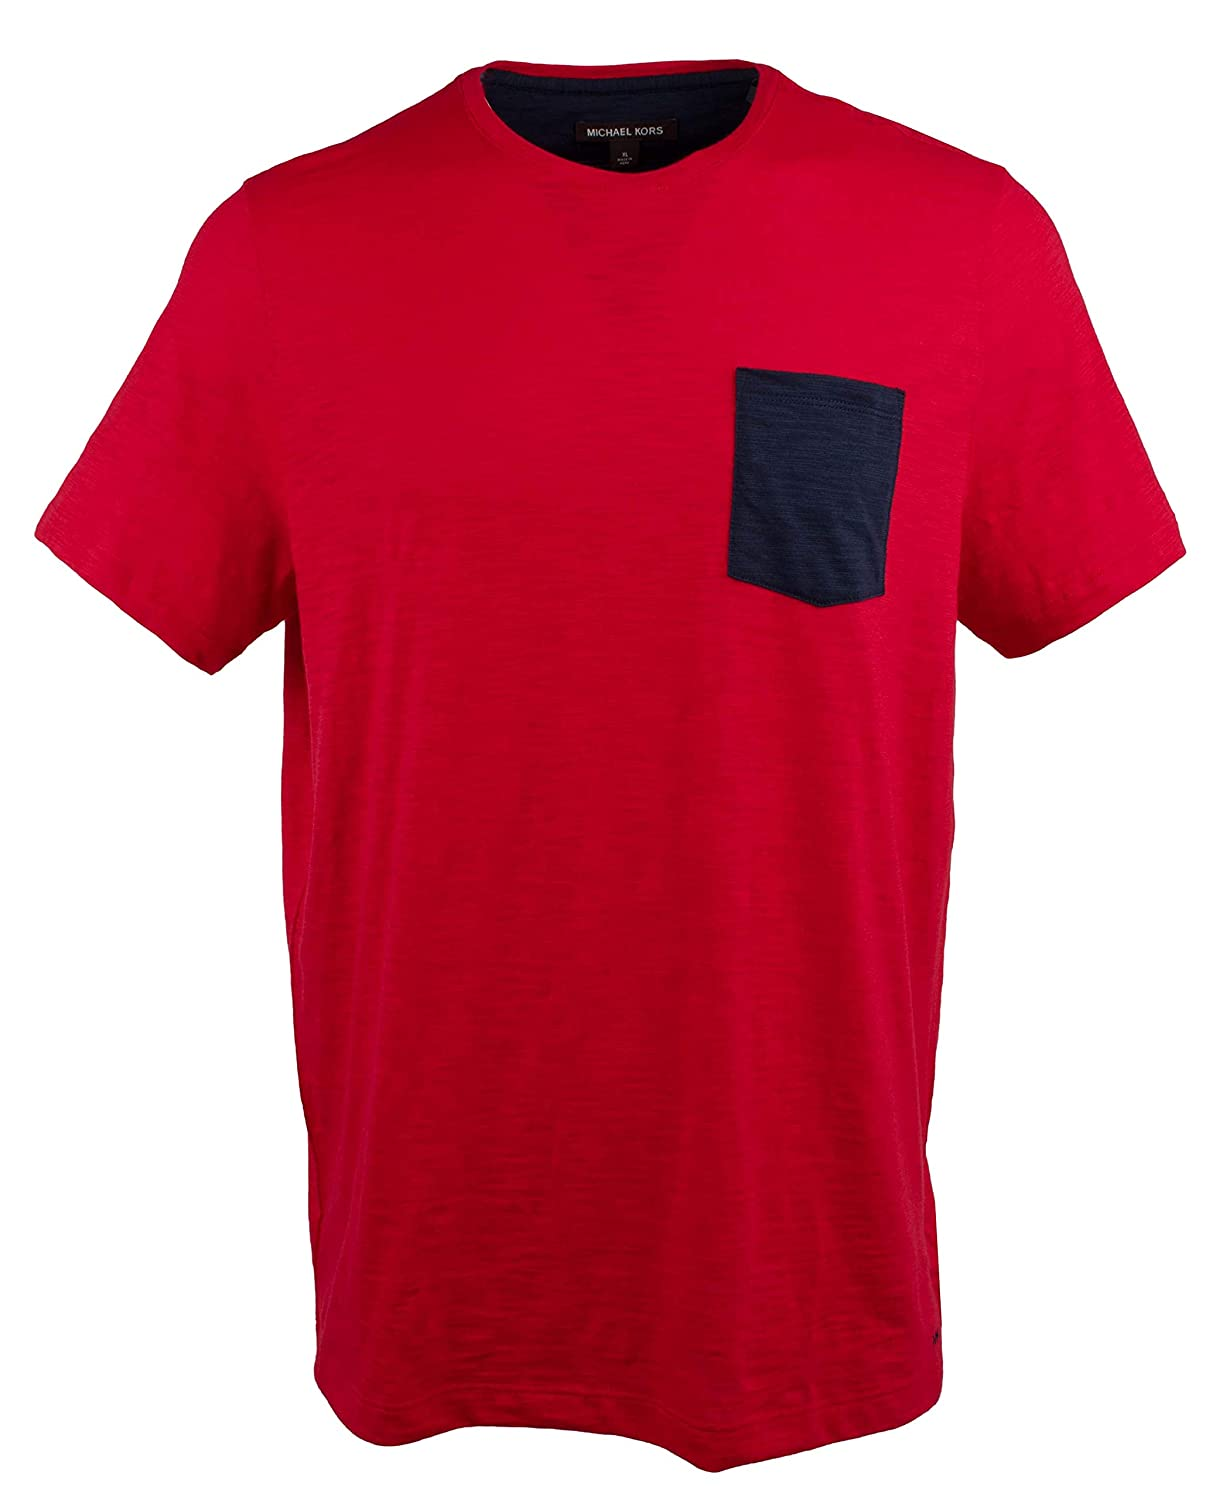 Michael Kors Mens Cotton Pocket T-Shirt: Amazon.es: Ropa y accesorios